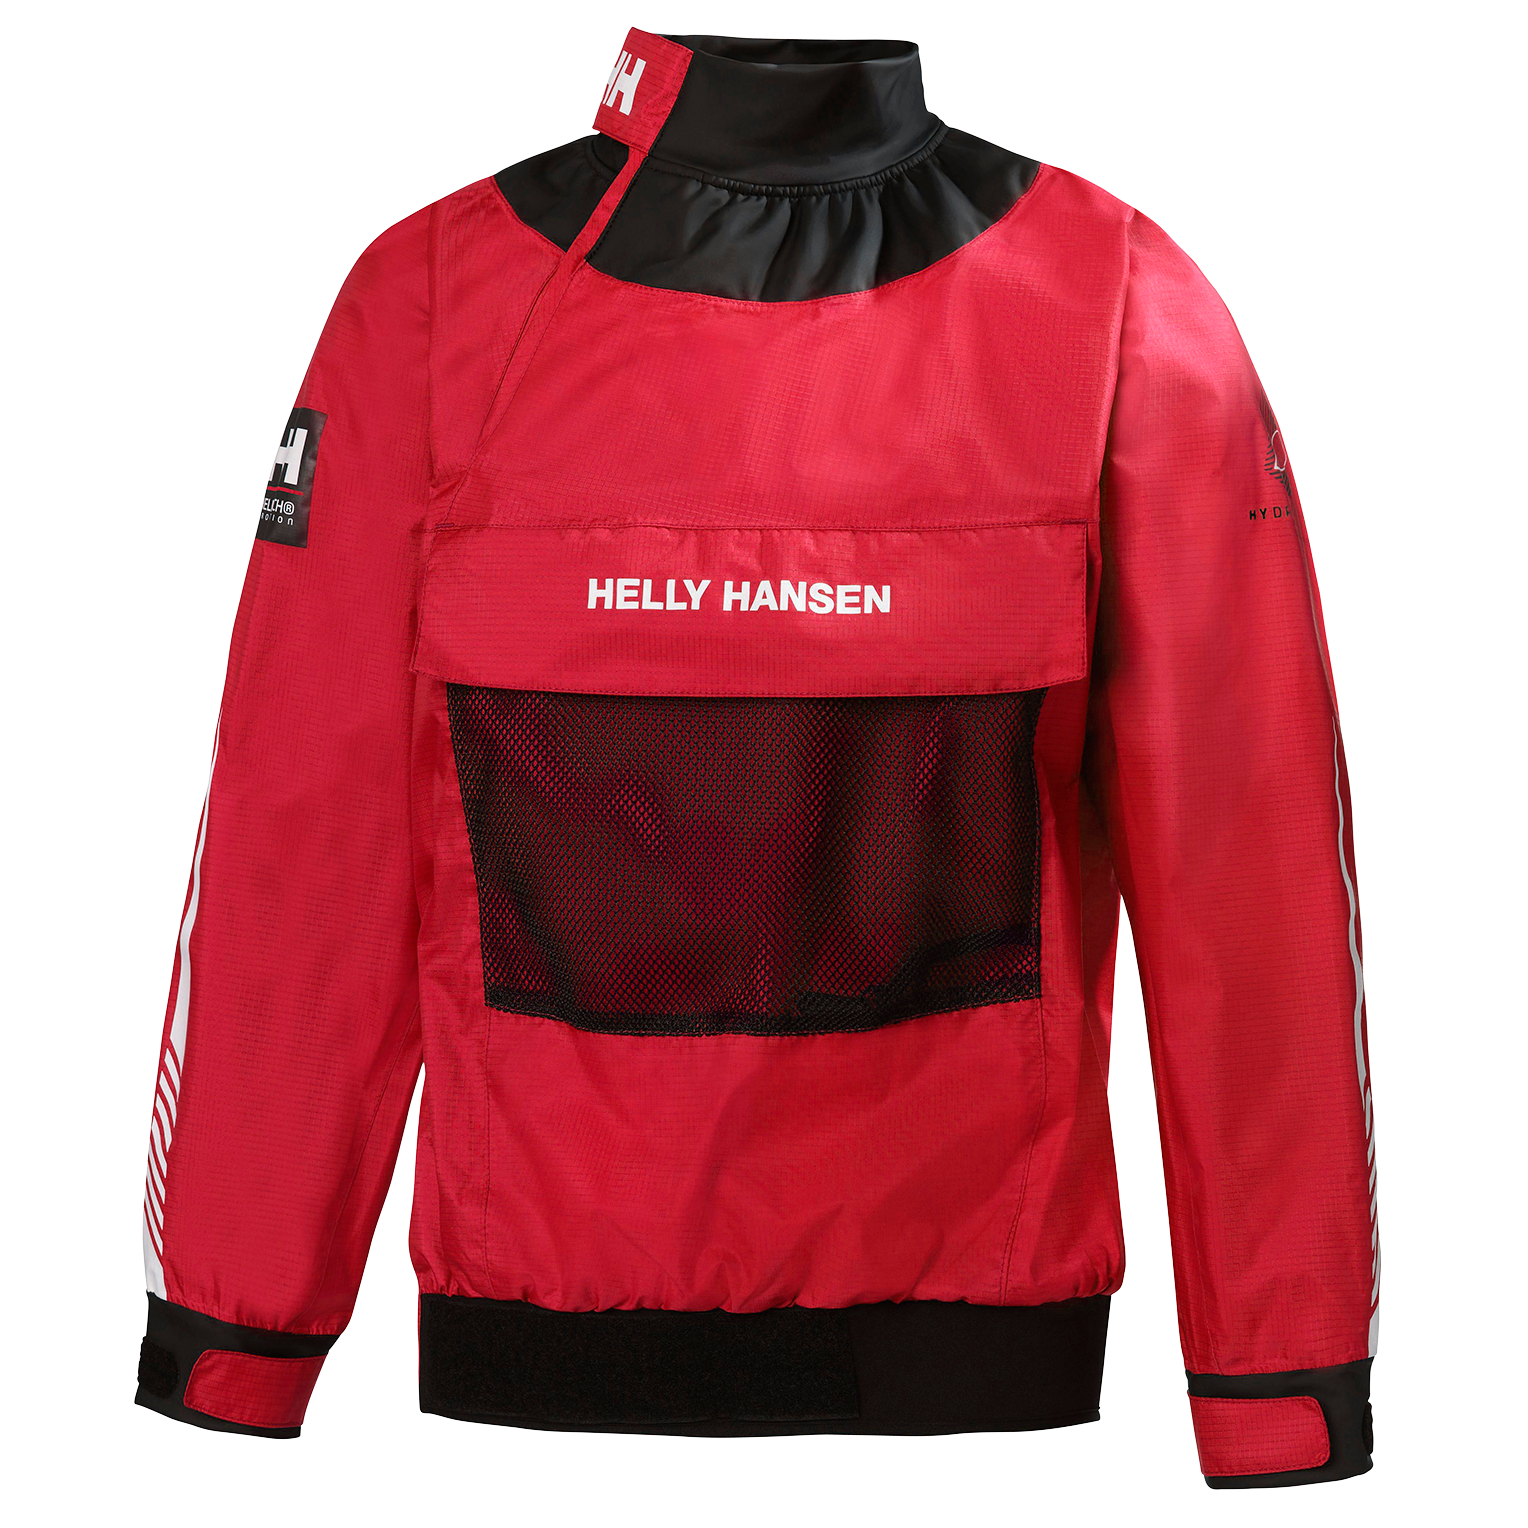 hp smock top men sailing jackets helly hansen official online store sailing gear. Black Bedroom Furniture Sets. Home Design Ideas